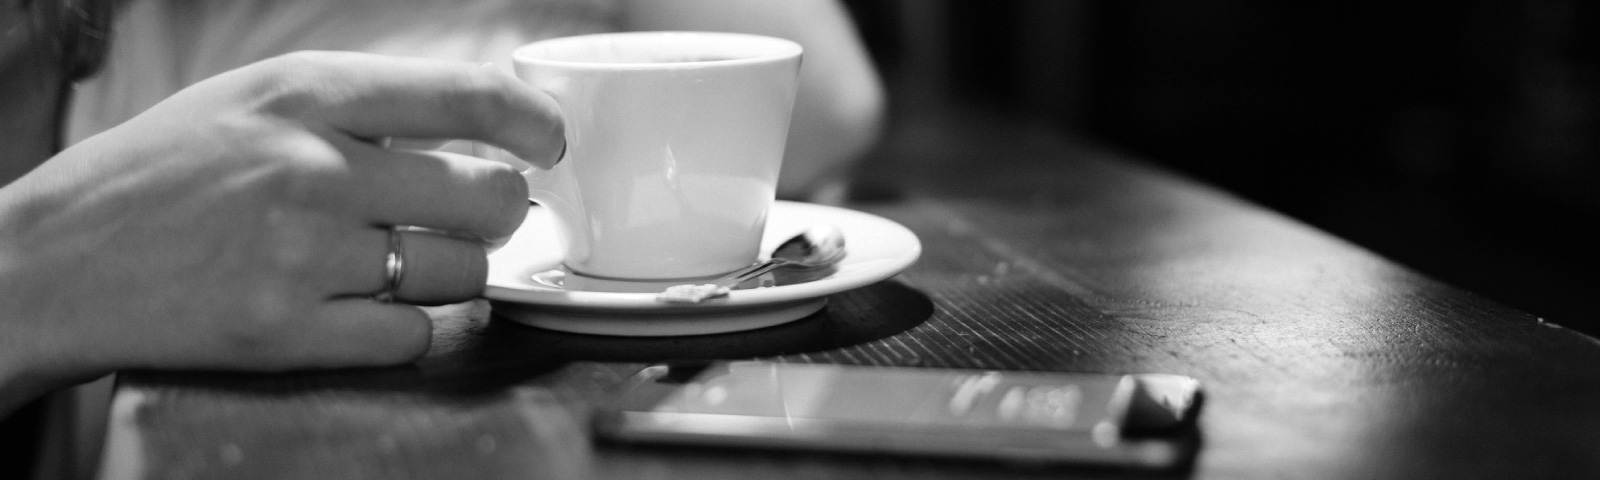 A woman's hand holding the handle of a tea cup in a cafe with her phone sitting nearby.